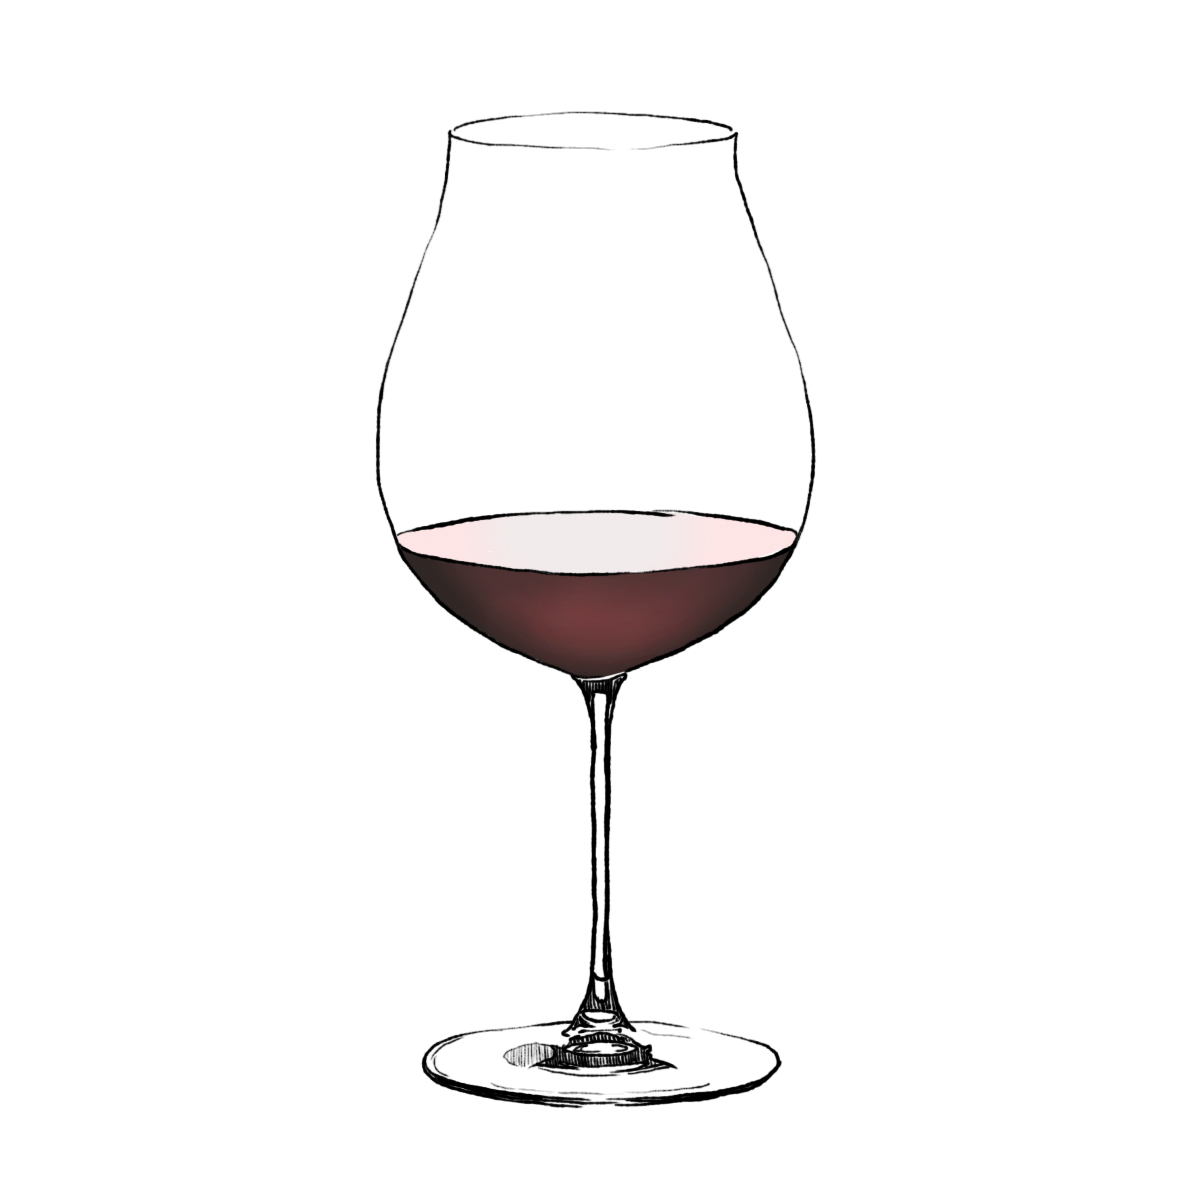 noli-soli-wine-glasses-red-2